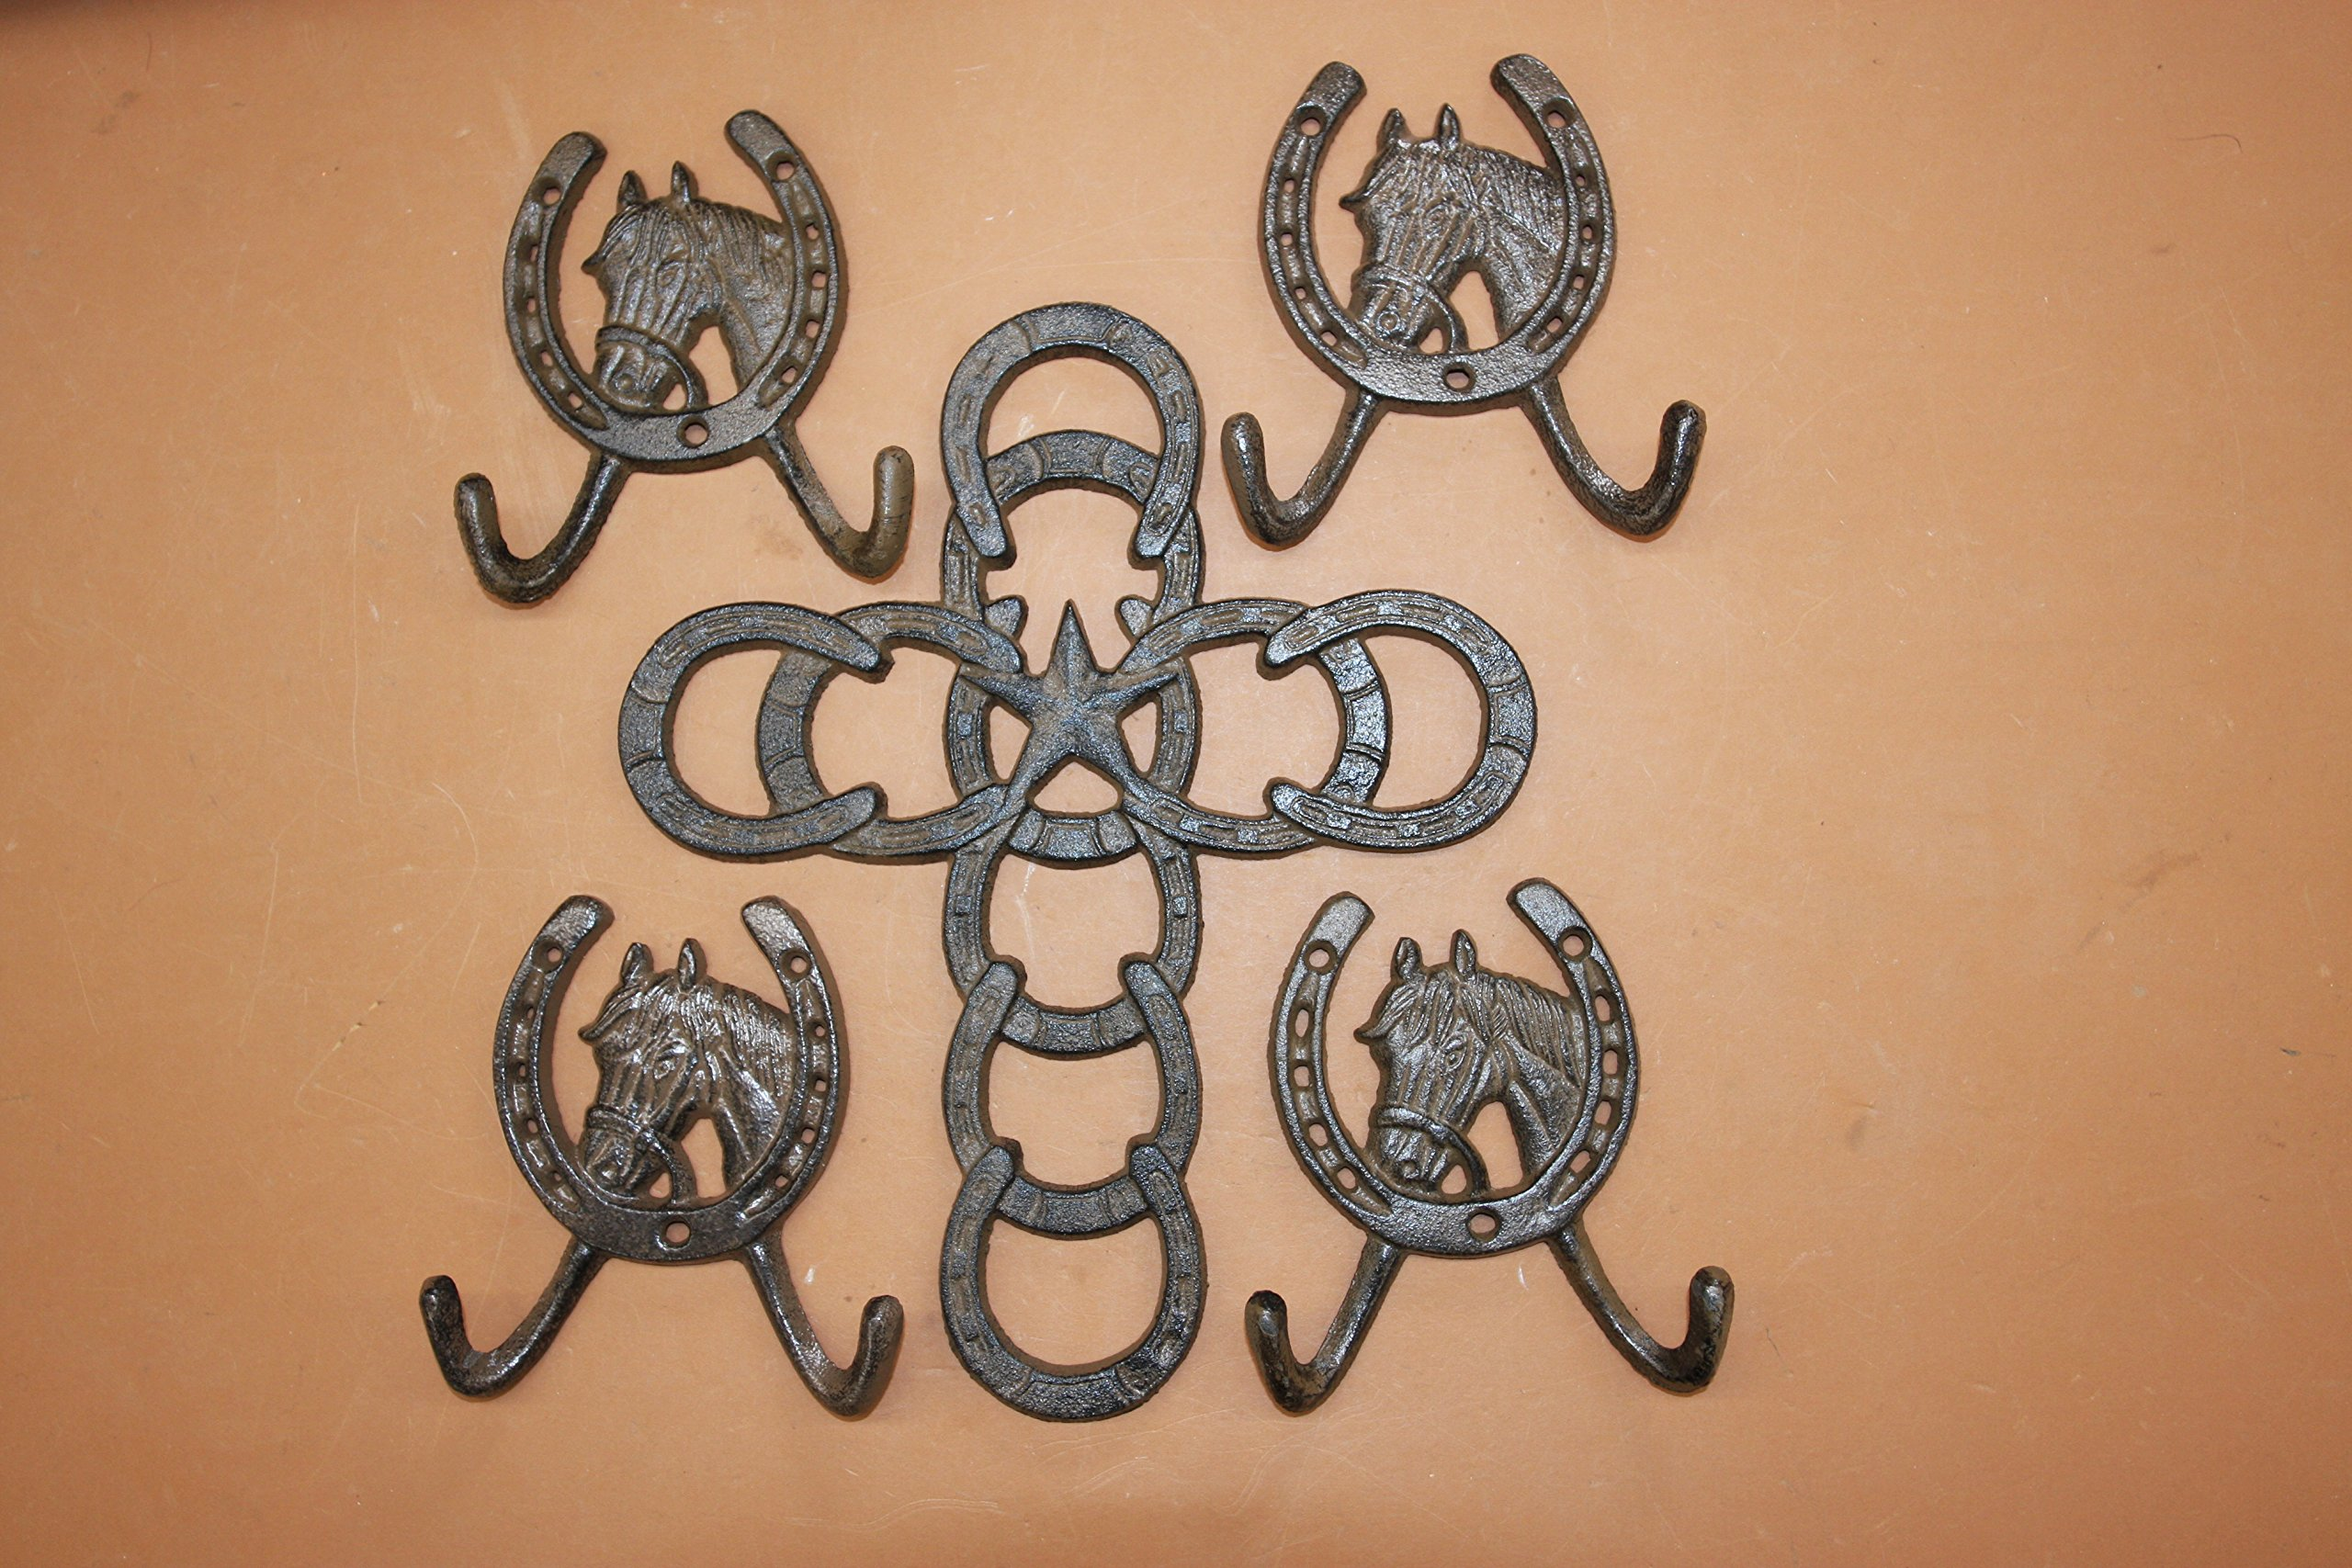 Christian Cowboy Home Decor Gift Set, Texas Lone Star Cast Iron Wall Cross, Country Horse Shoe Wall Hooks Bundle 5 Items